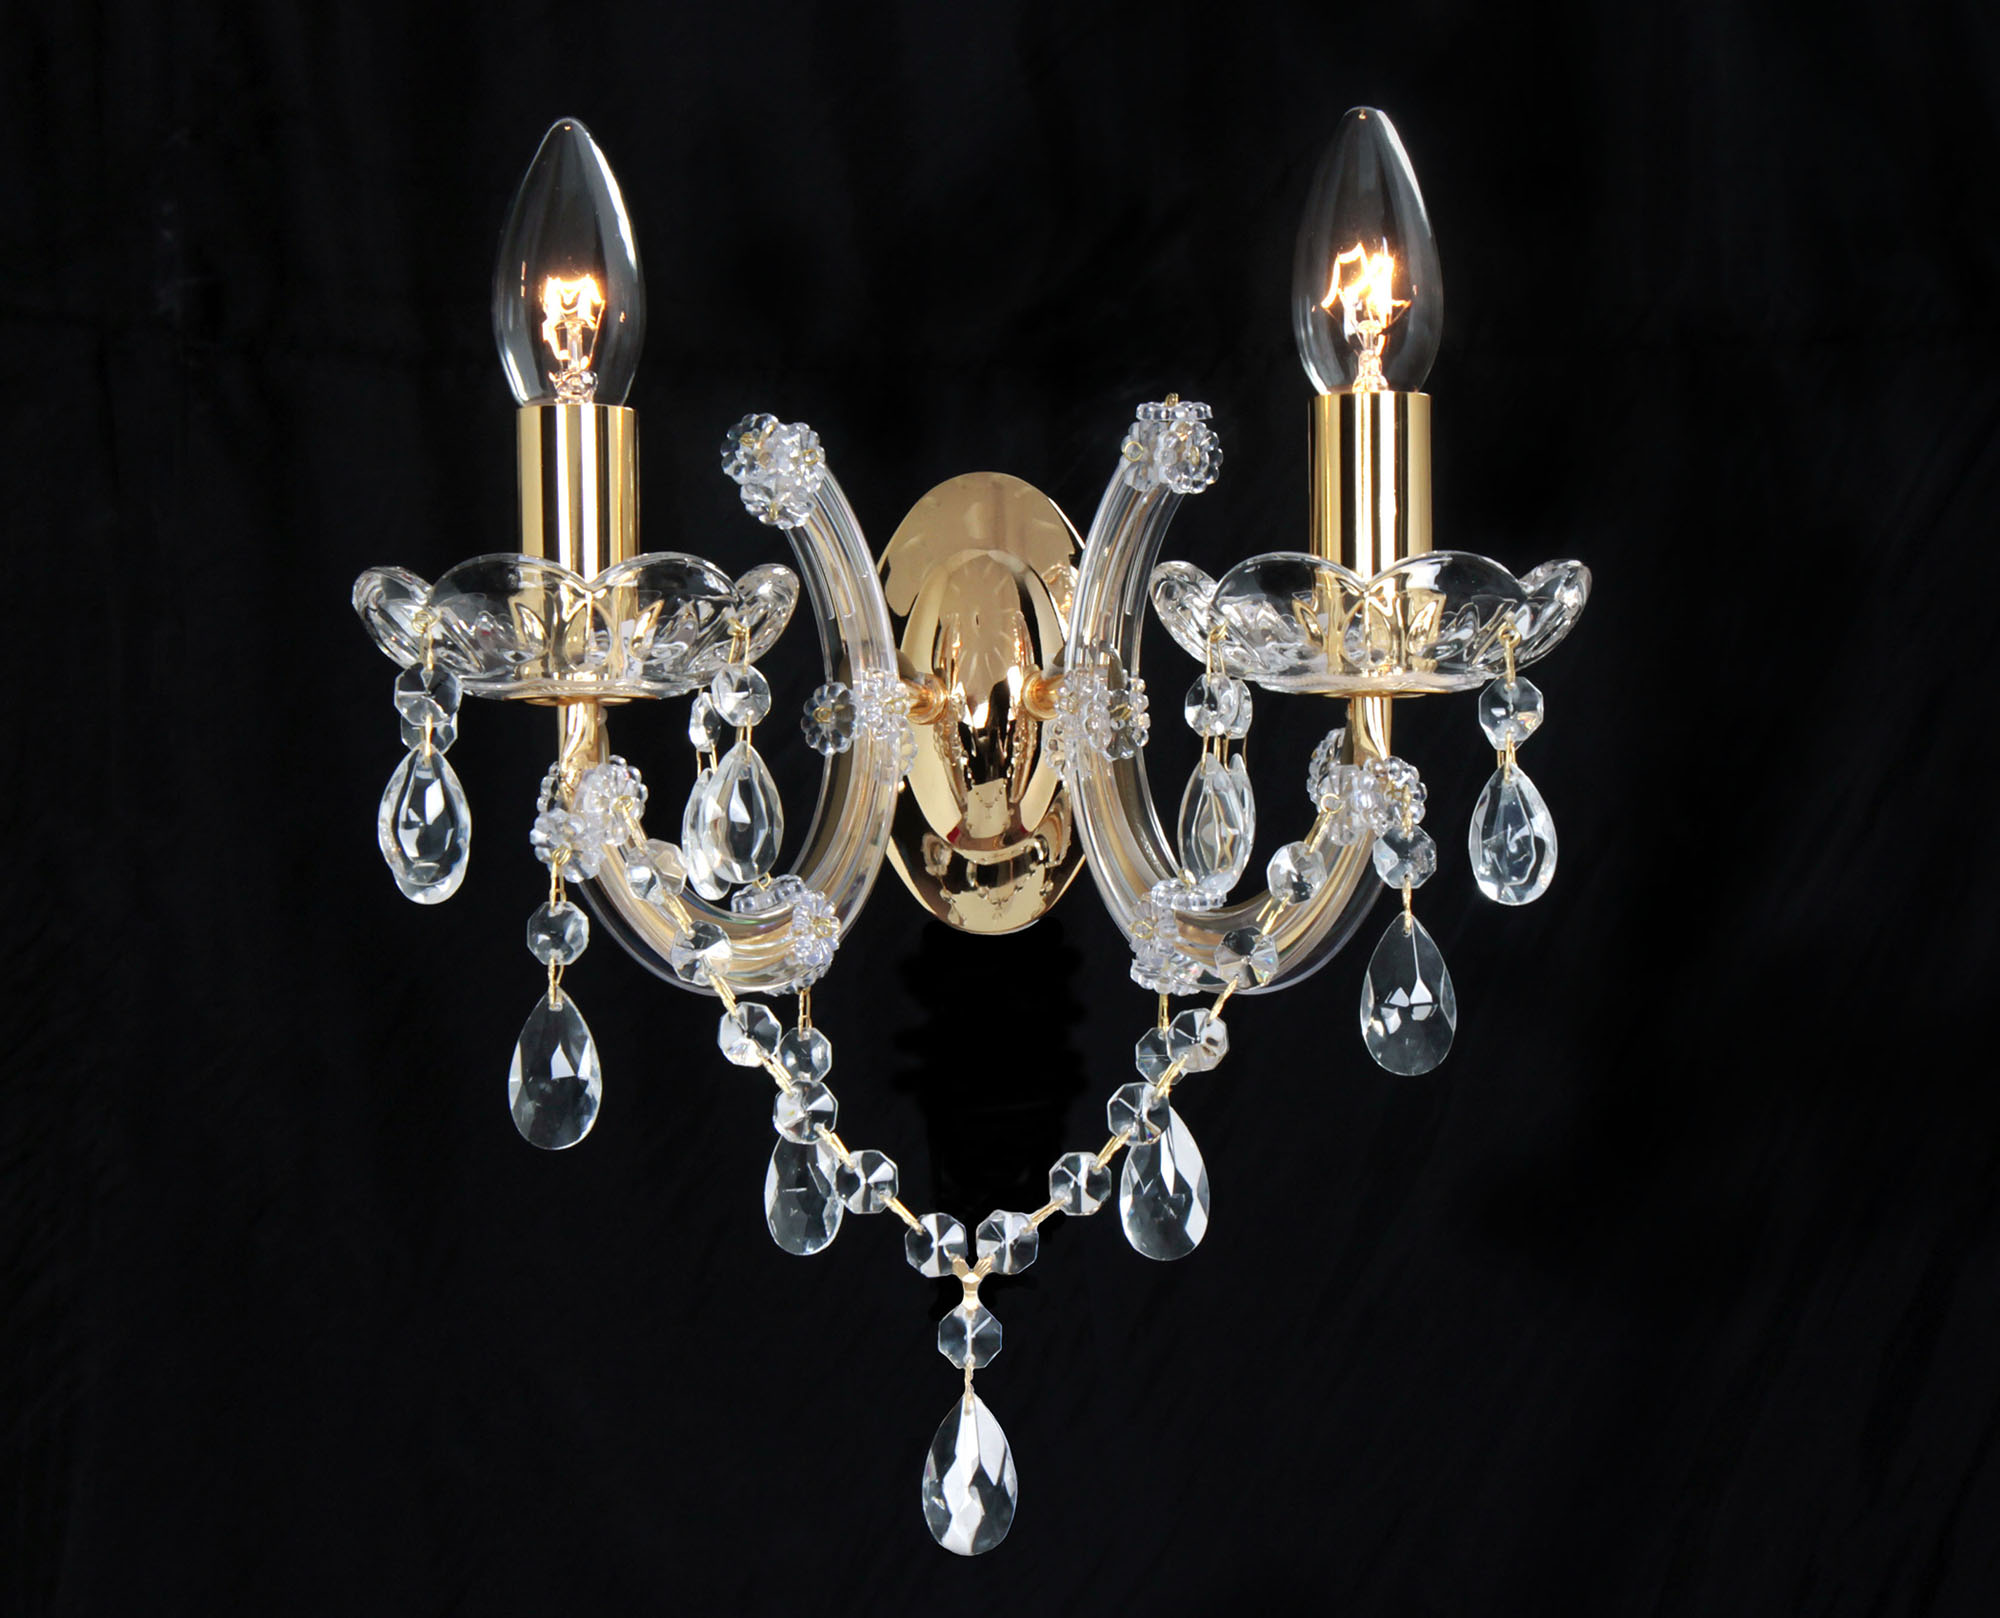 Gabrielle Crystal Wall Lights Deco Traditional Crystal Wall Lights